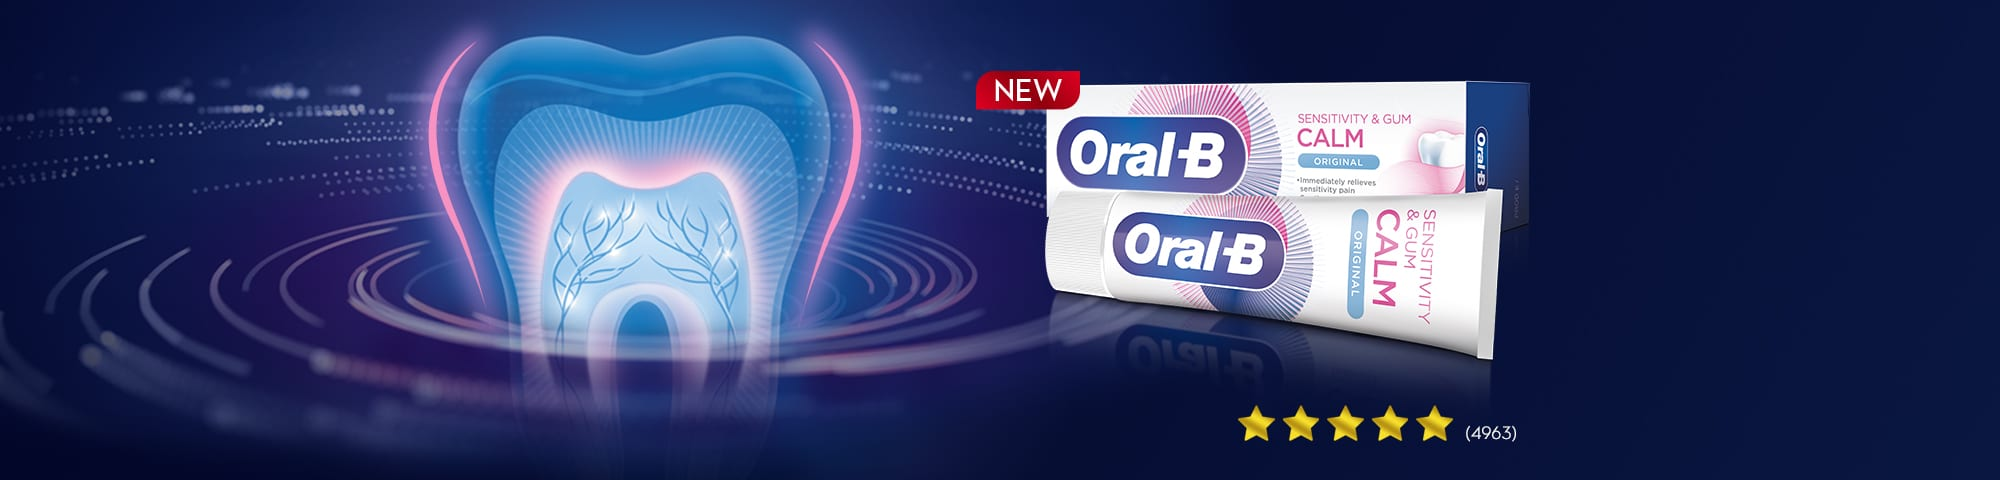 ORAL B products in egypt with best prices